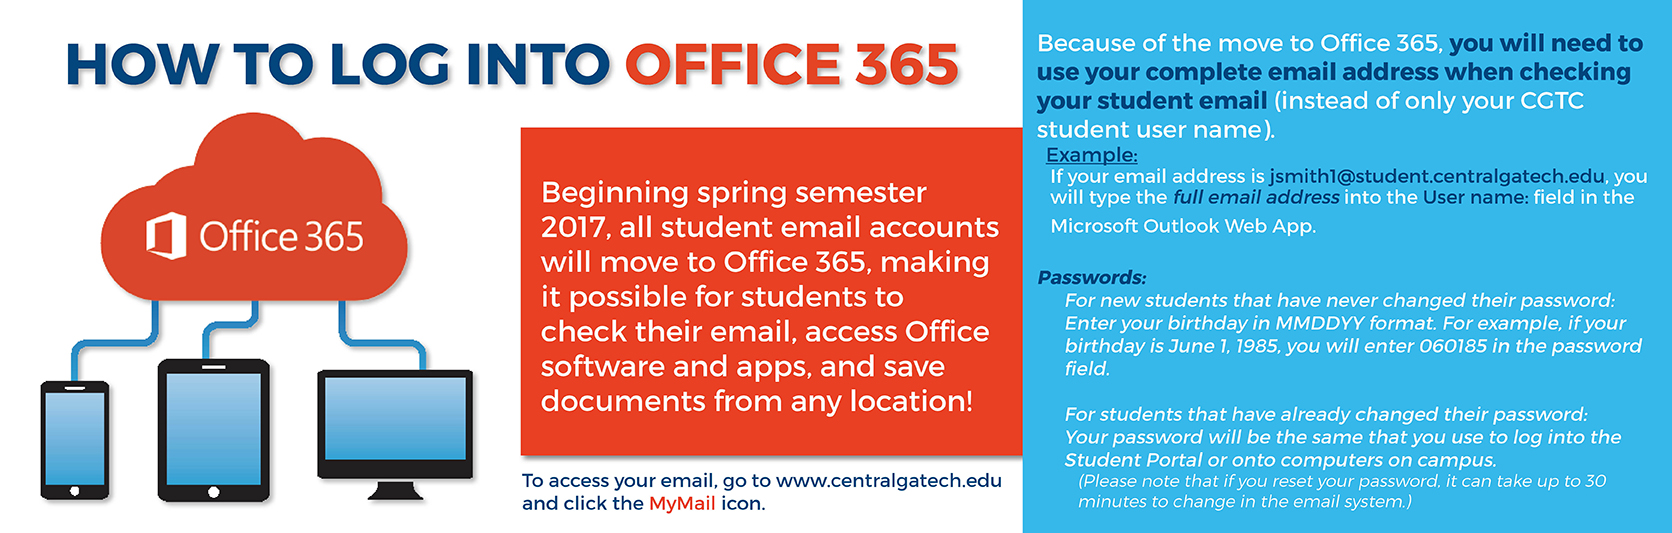 Beginning spring semester 2017, student email accounts have moved to Office 365. Because of the move to Office 365, you will need to use your complete email address when checking your student email (instead of only your CGTC student user name). For example, if your email address is jsmith1@student.centralgatech.edu, you will type the full email address into the User name: field in the Microsoft Outlook Web App.